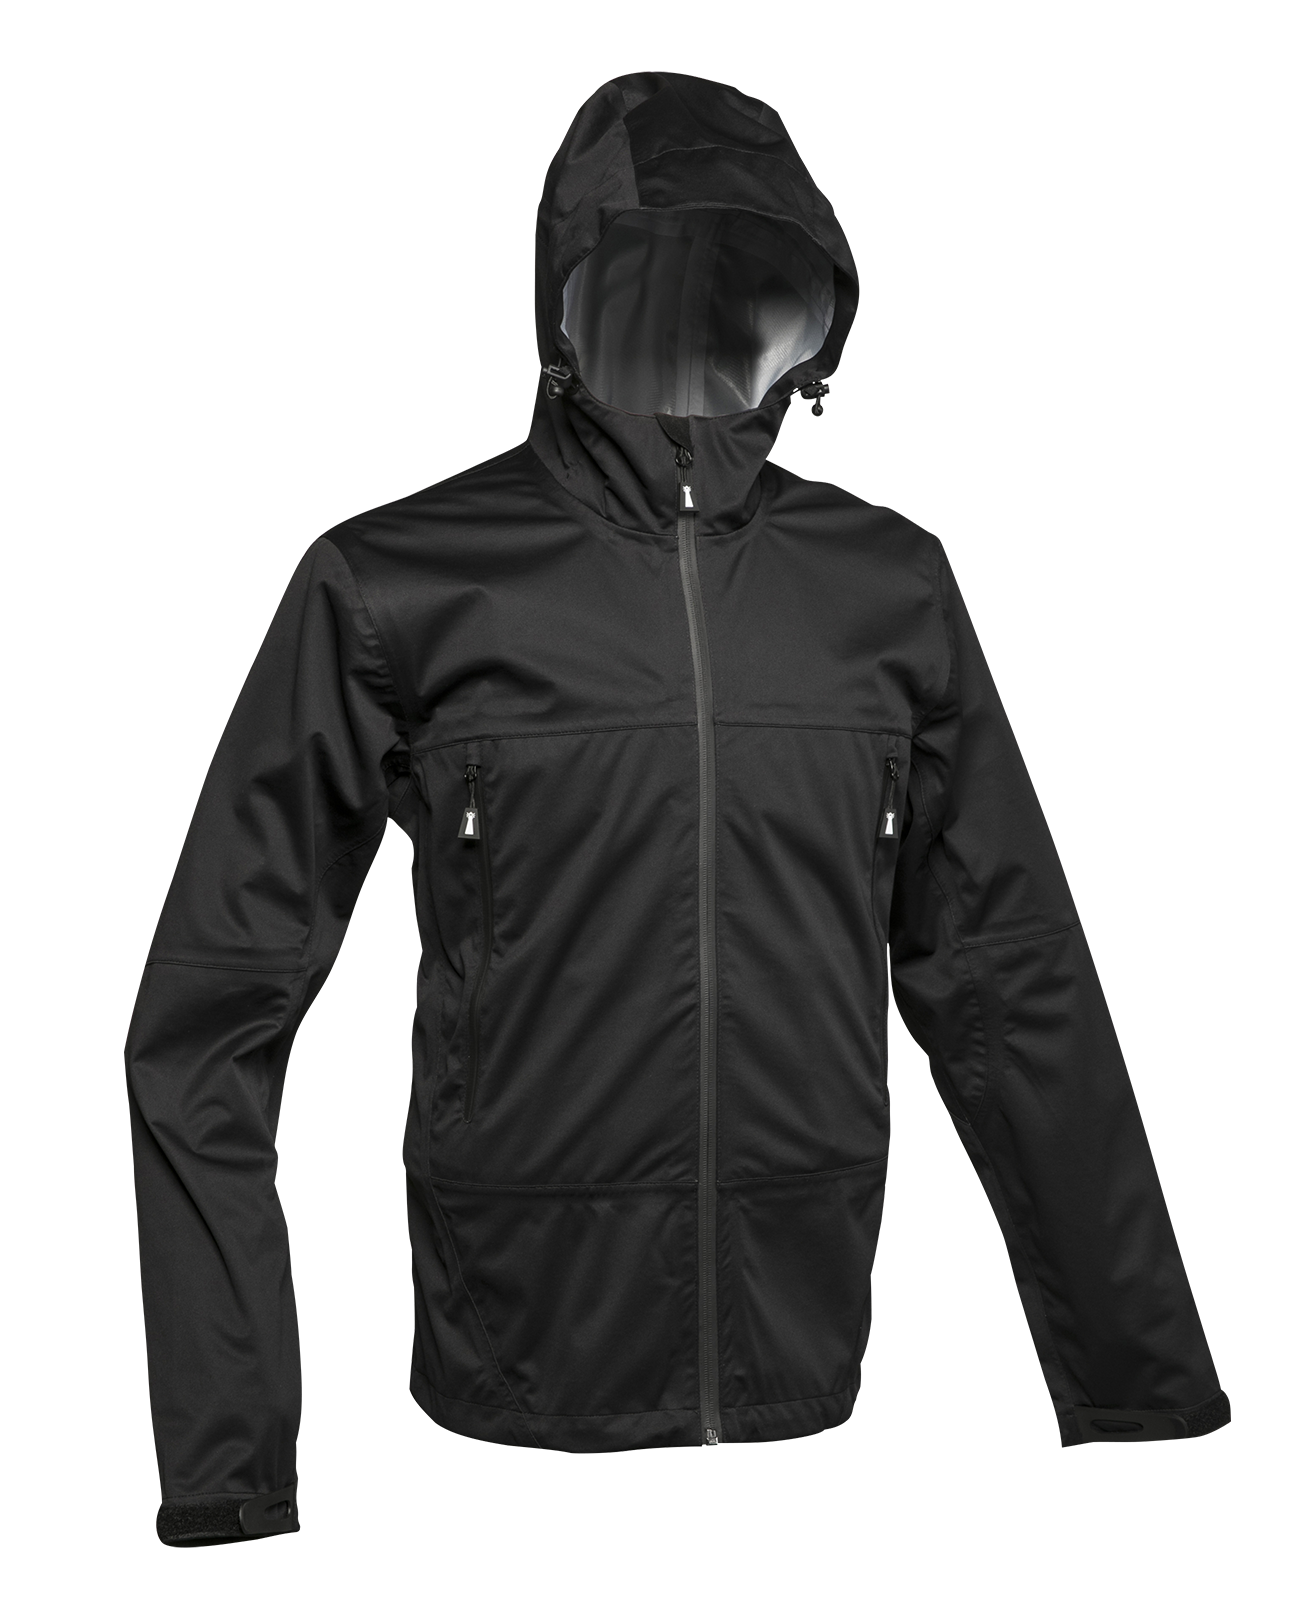 Beacon Unisex Wind and Waterproof 3-Layers Shell Jacket in Black